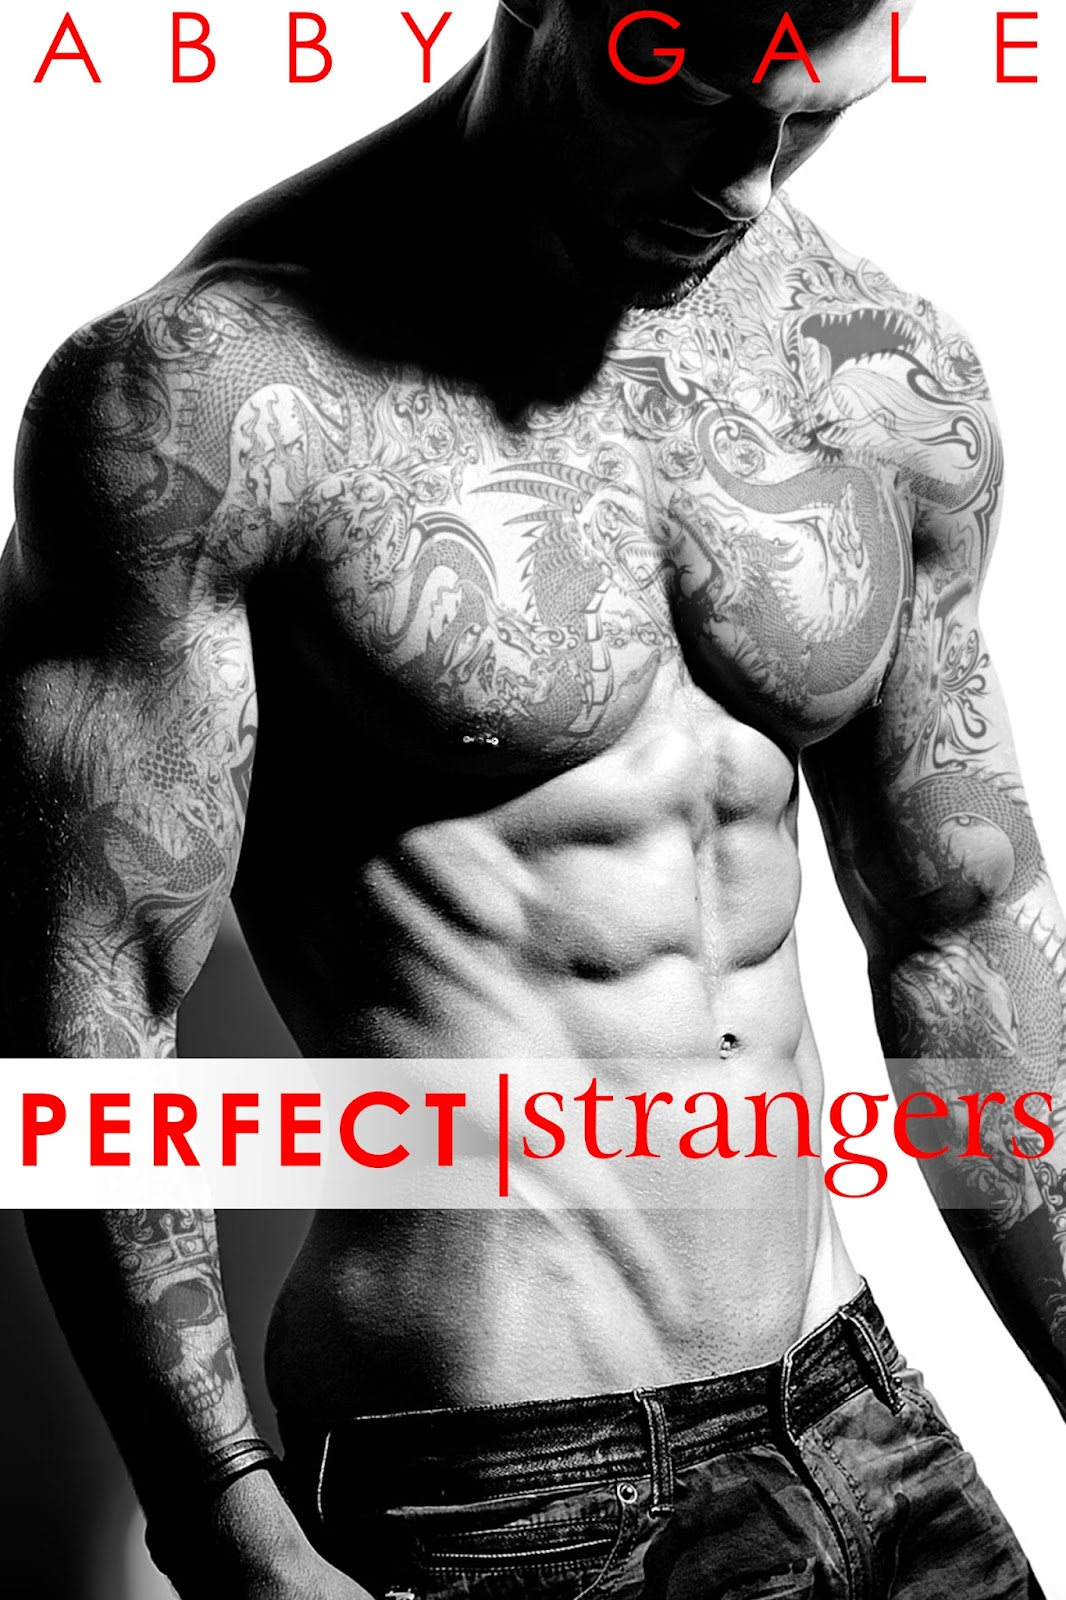 Perfect Stranger Abby Gale Ecover.jpg